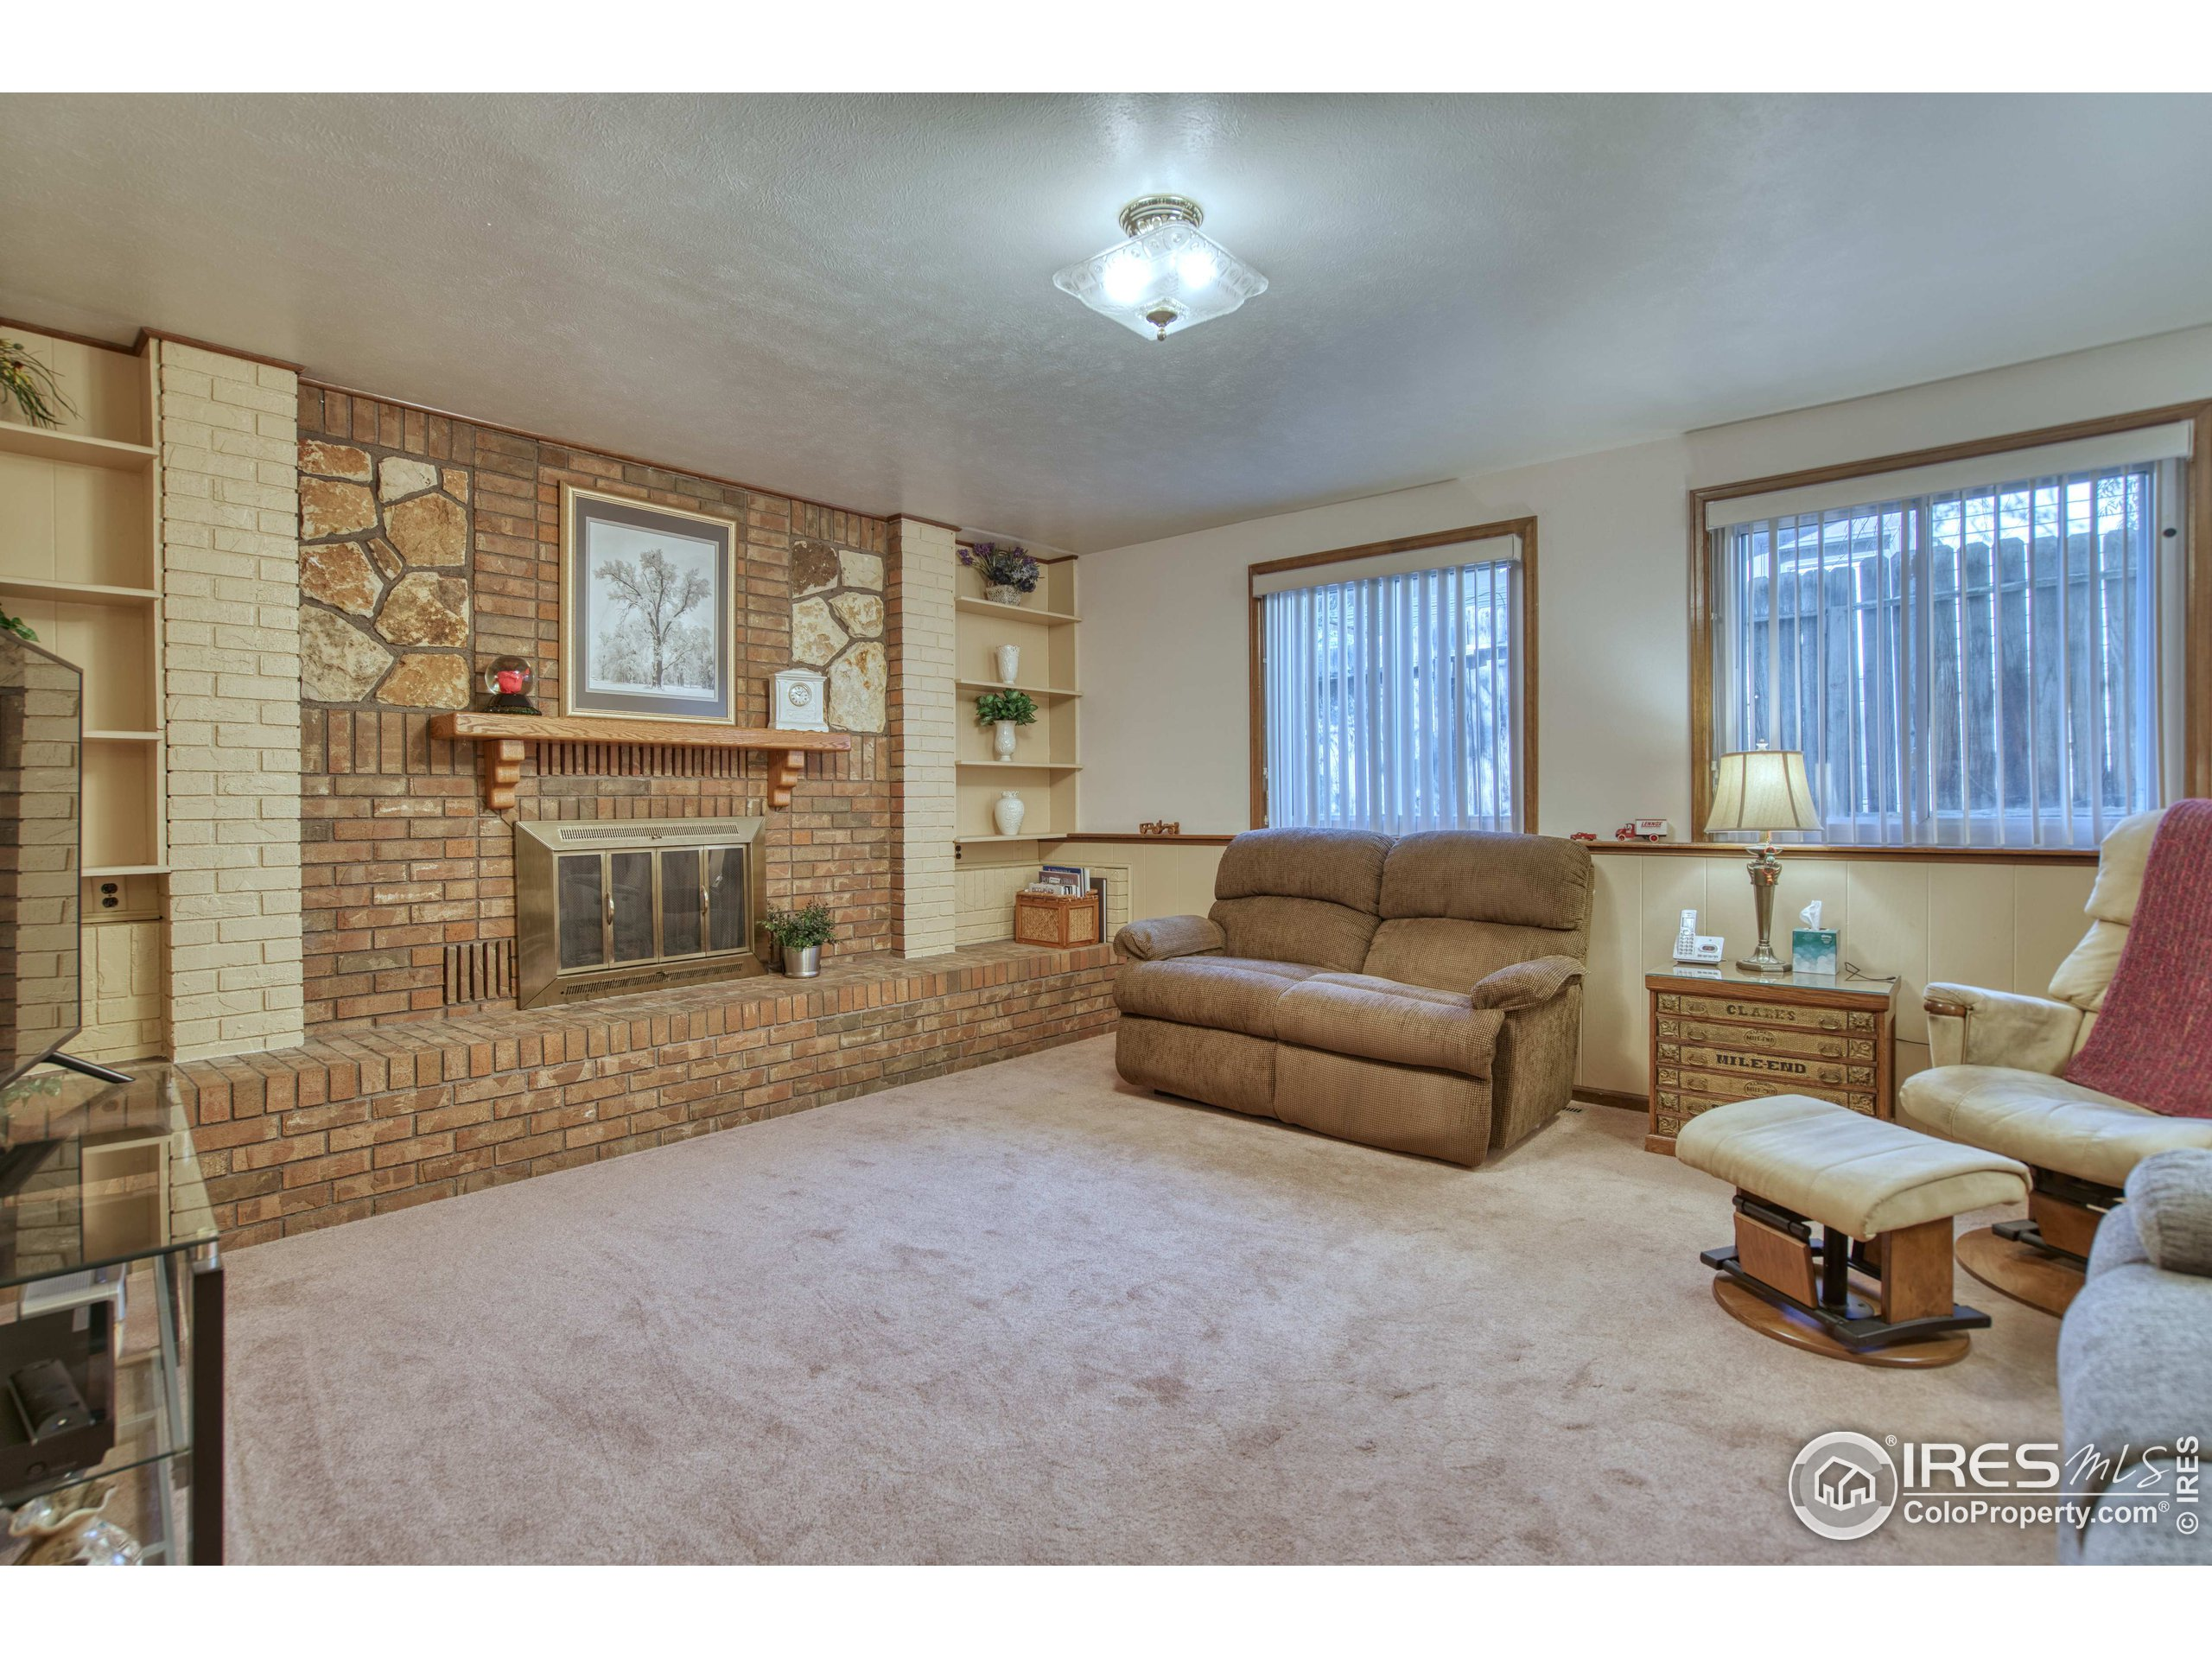 Family Room with Gas Fireplace & Built-in Shelves